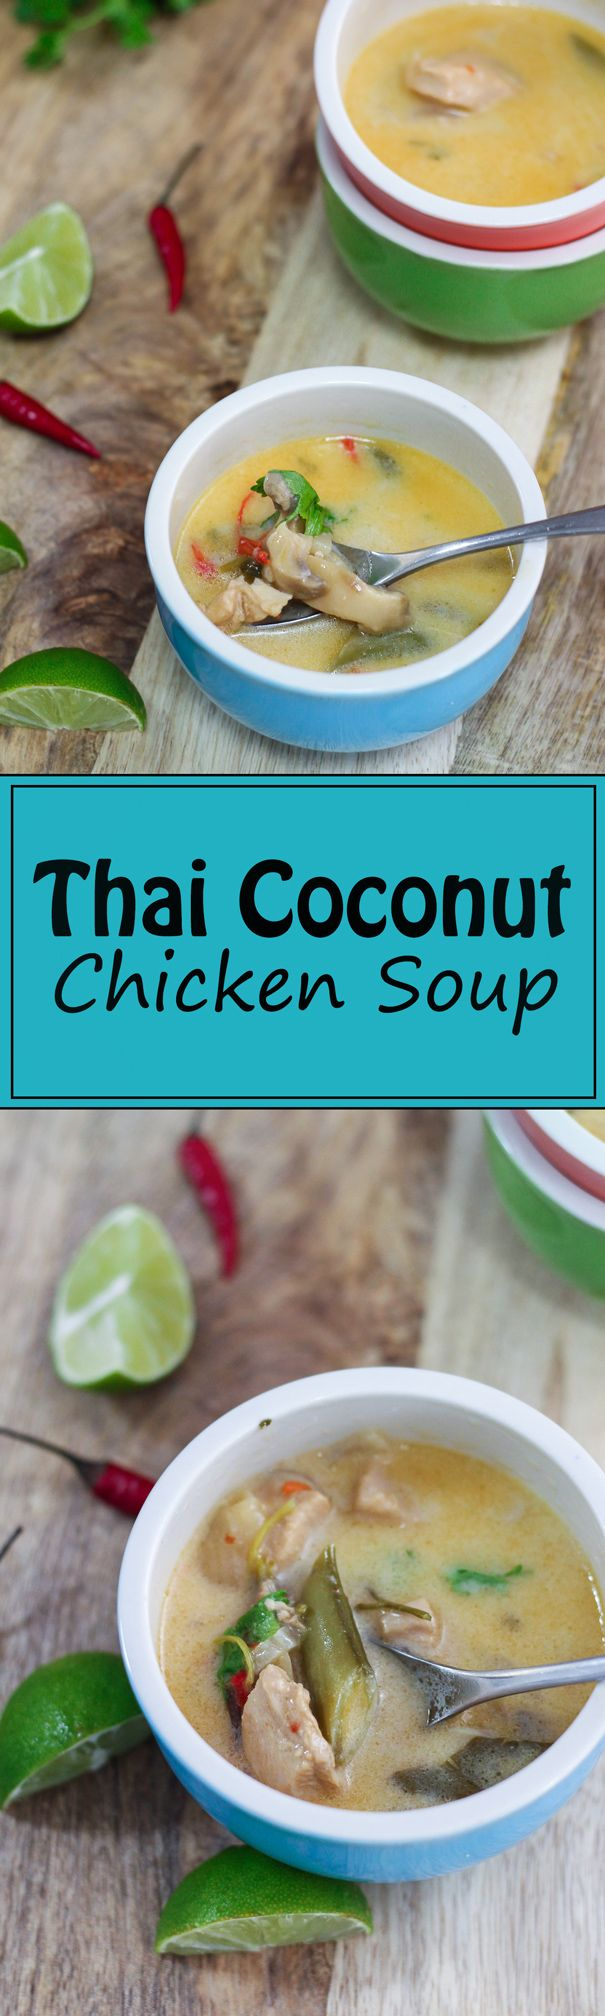 This Thai Coconut Chicken Soup is delicious! I have never tasted a soup that delivers so many flavors in just one bowl. T